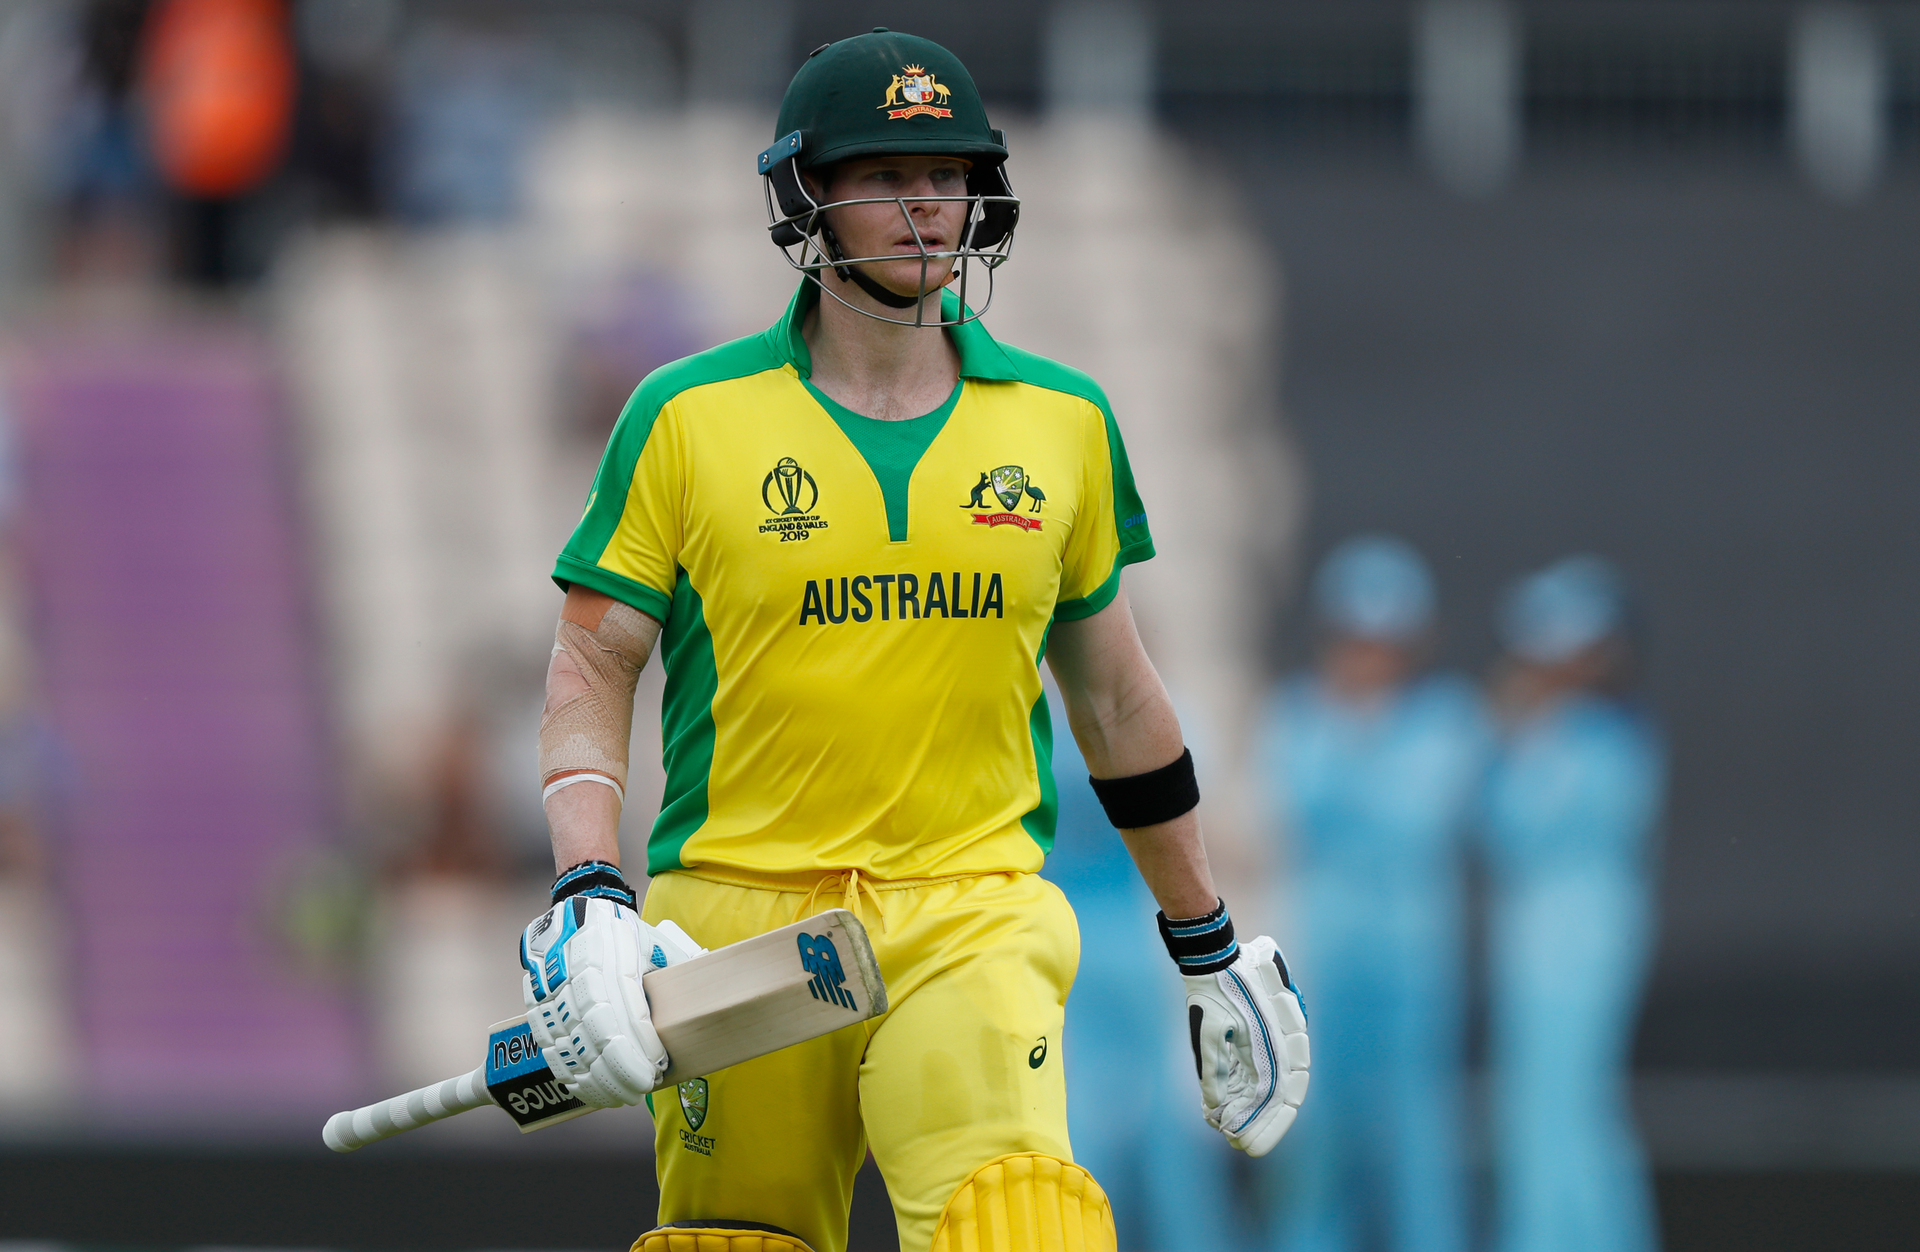 Steve Smith and David Warner booed, called cheats against England in World Cup warm up